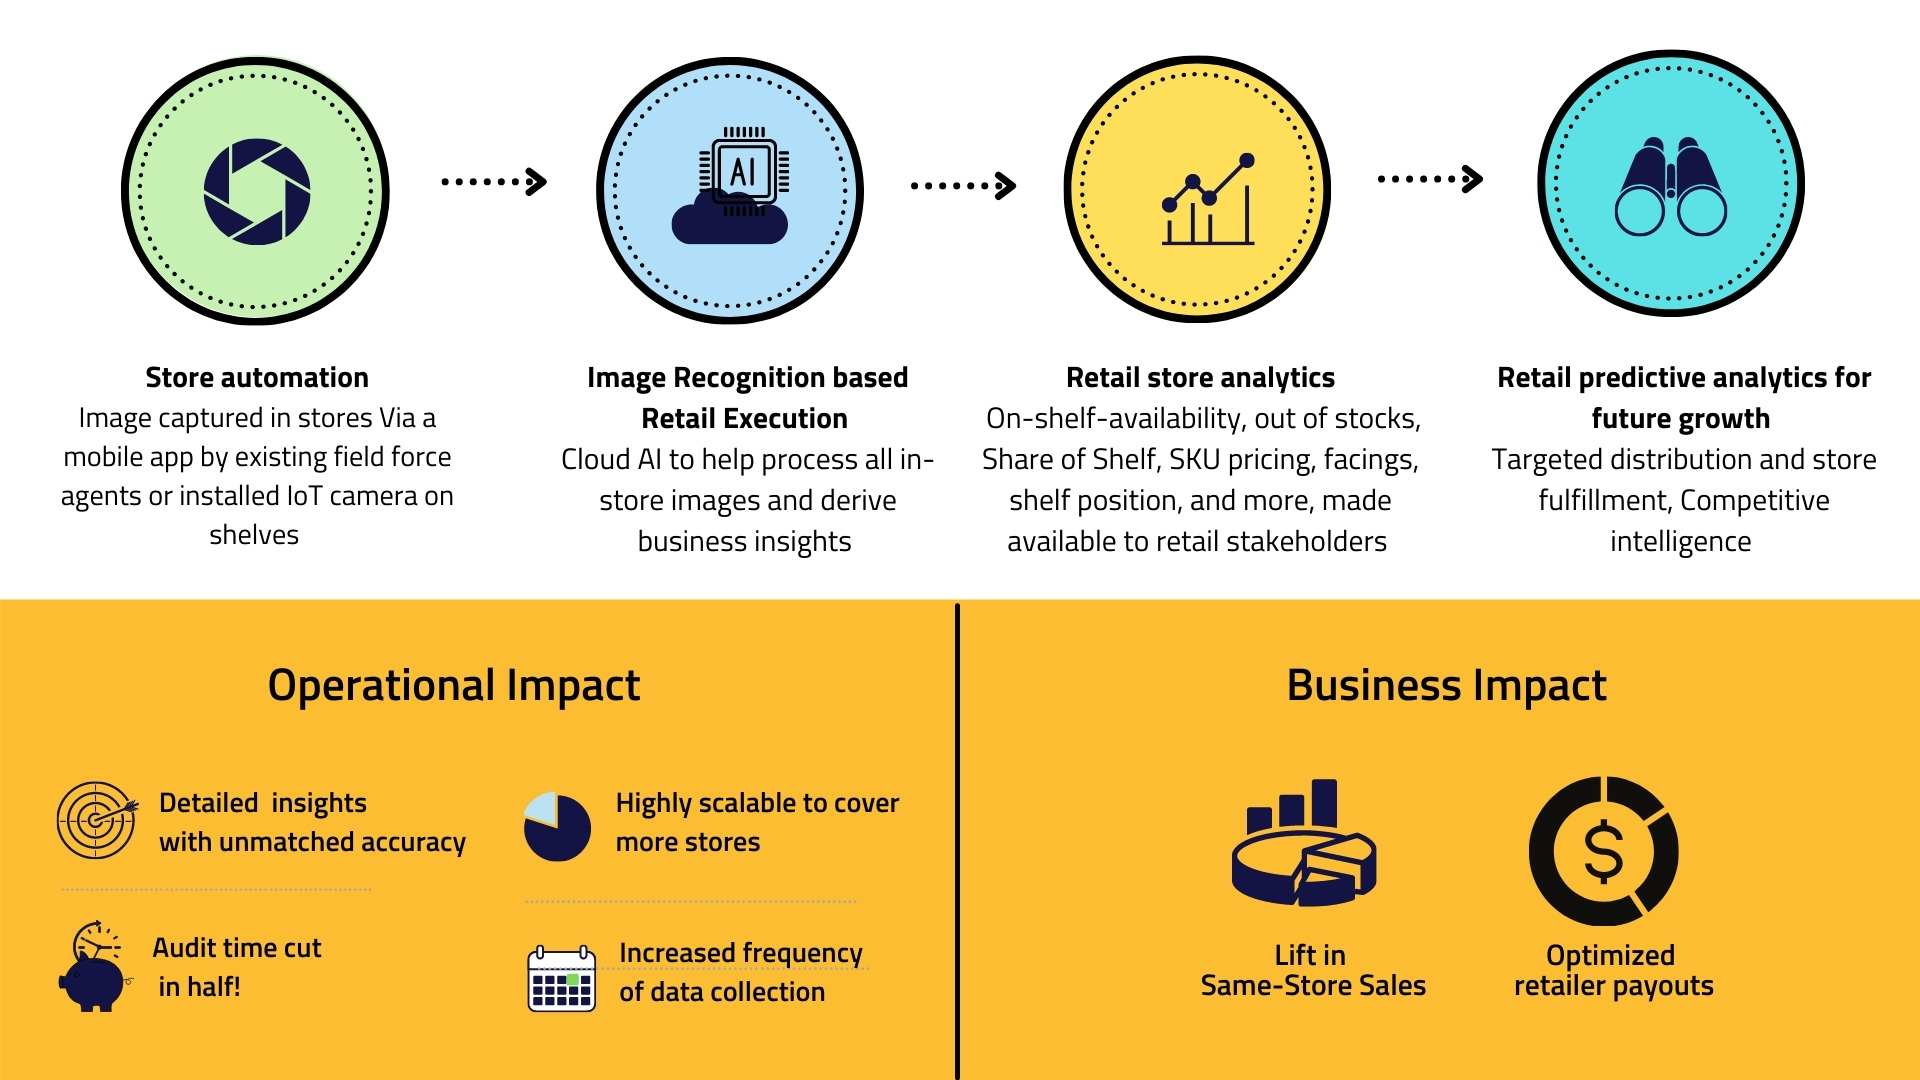 image recognition in retail and its benefits